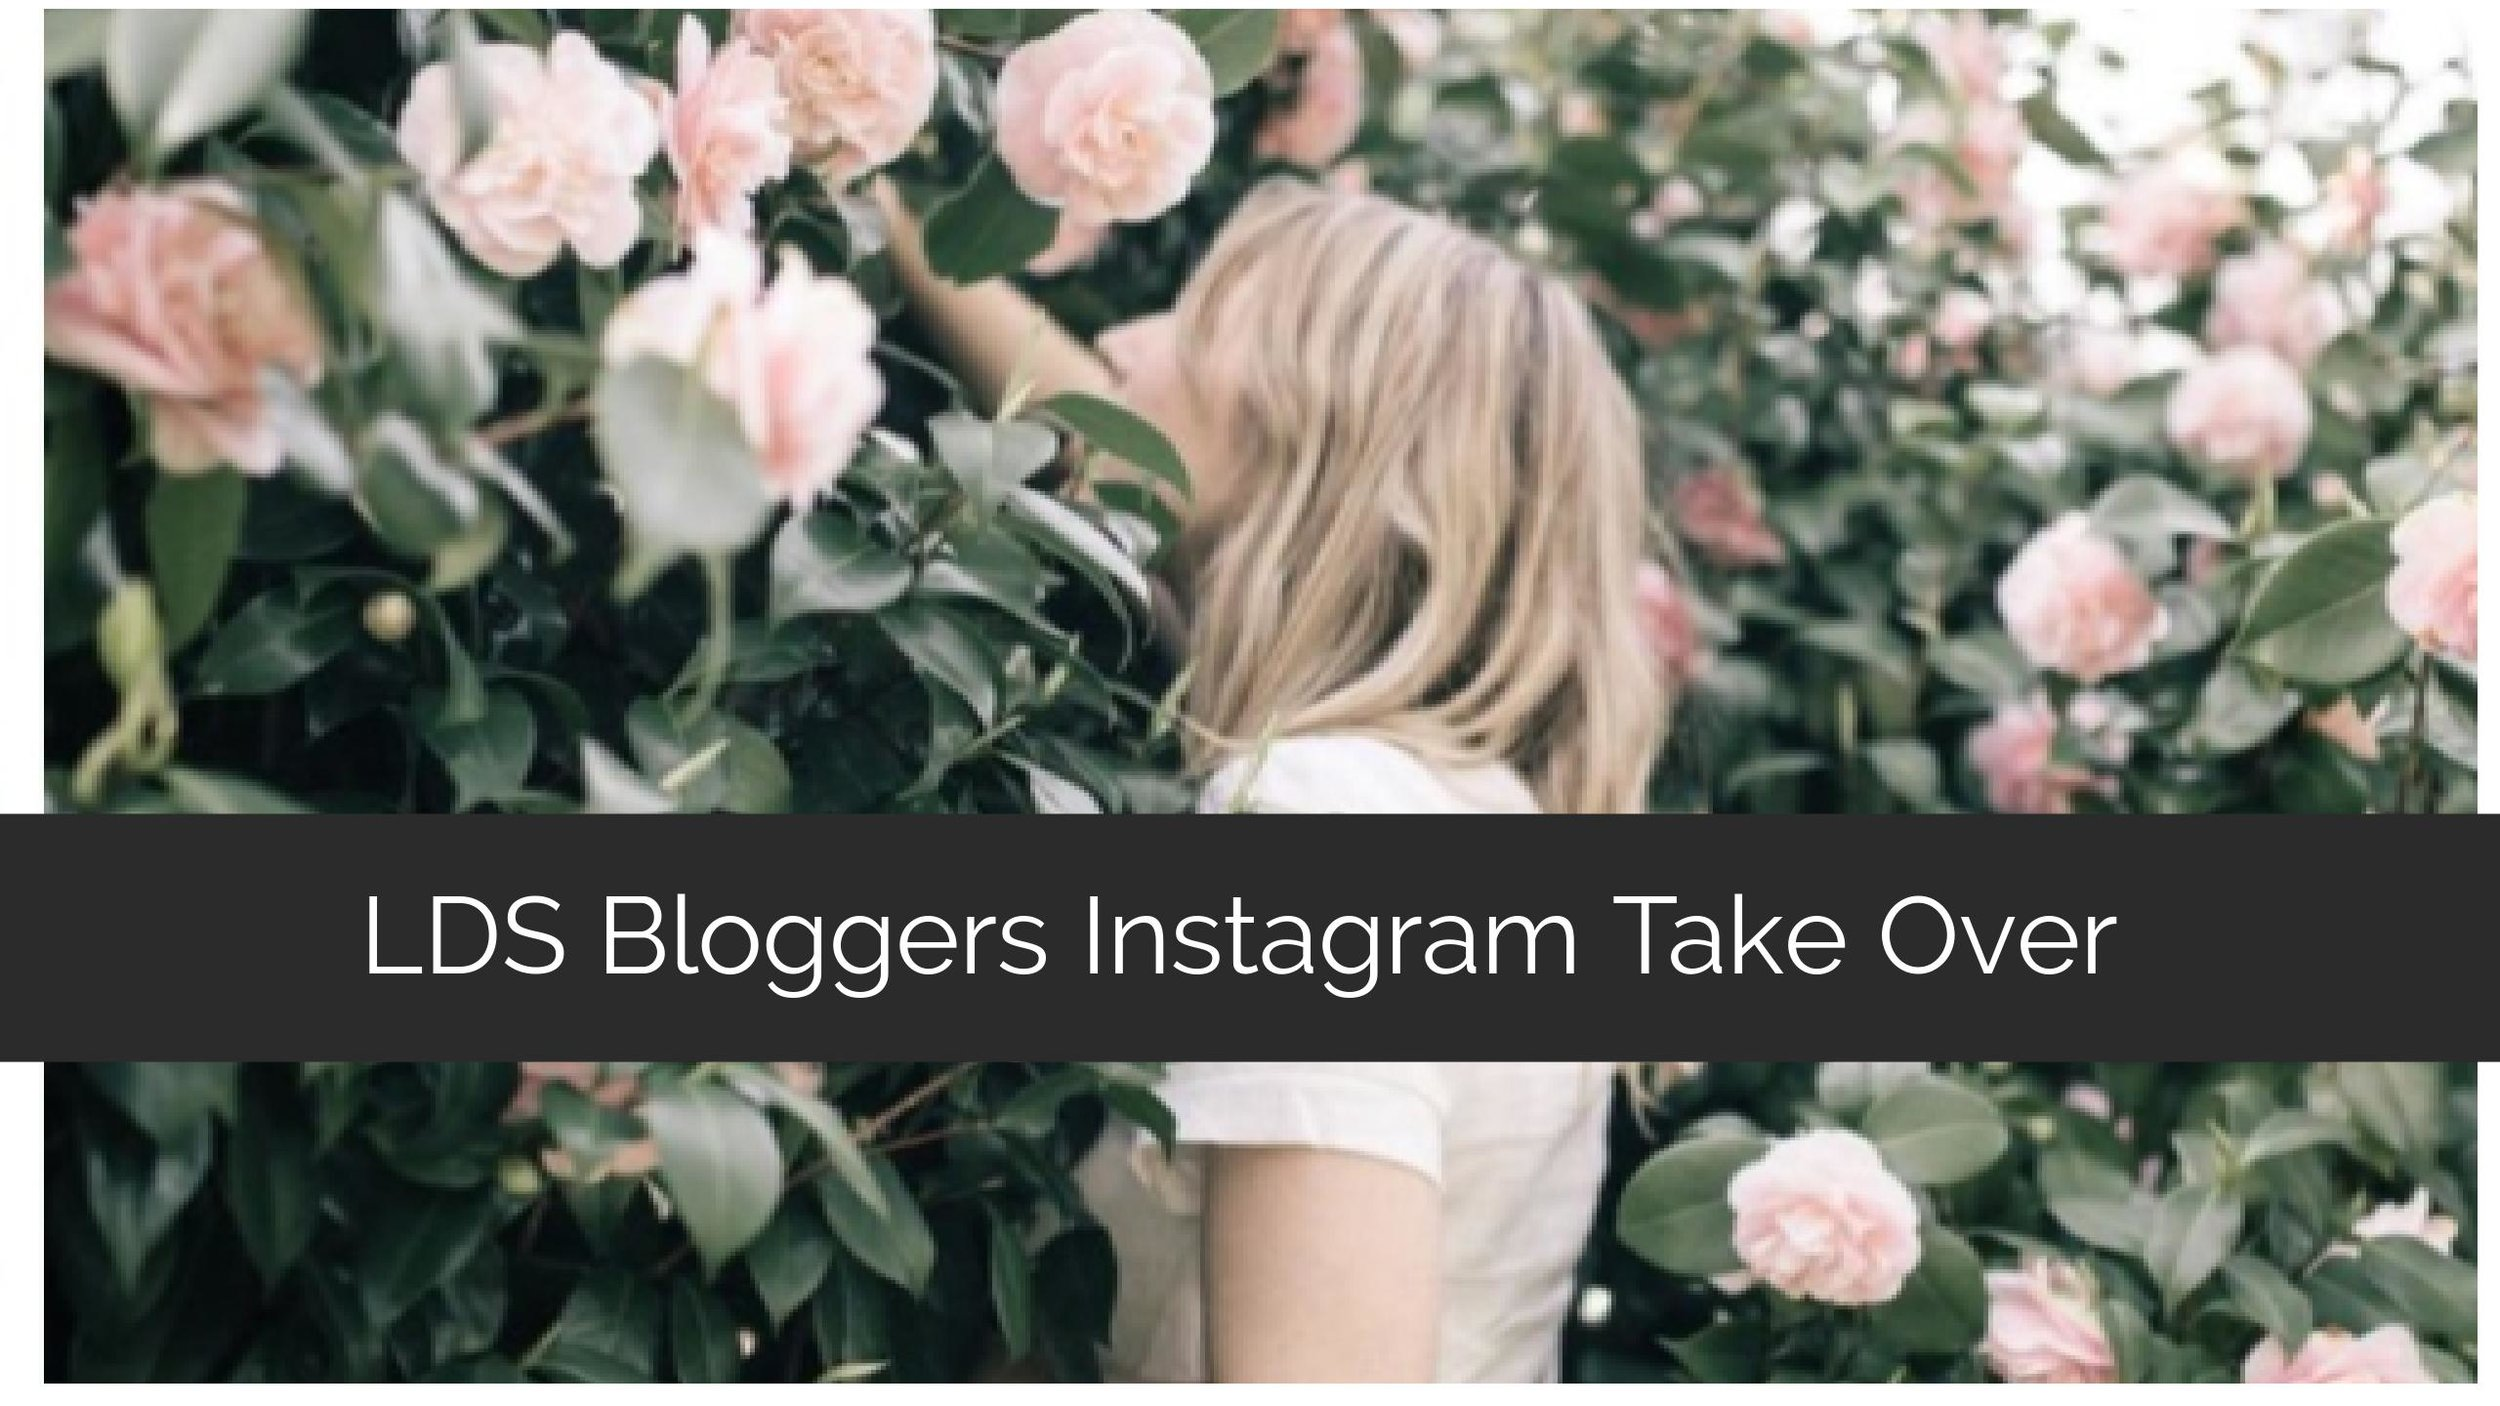 LDS Bloggers Instagram Take Over